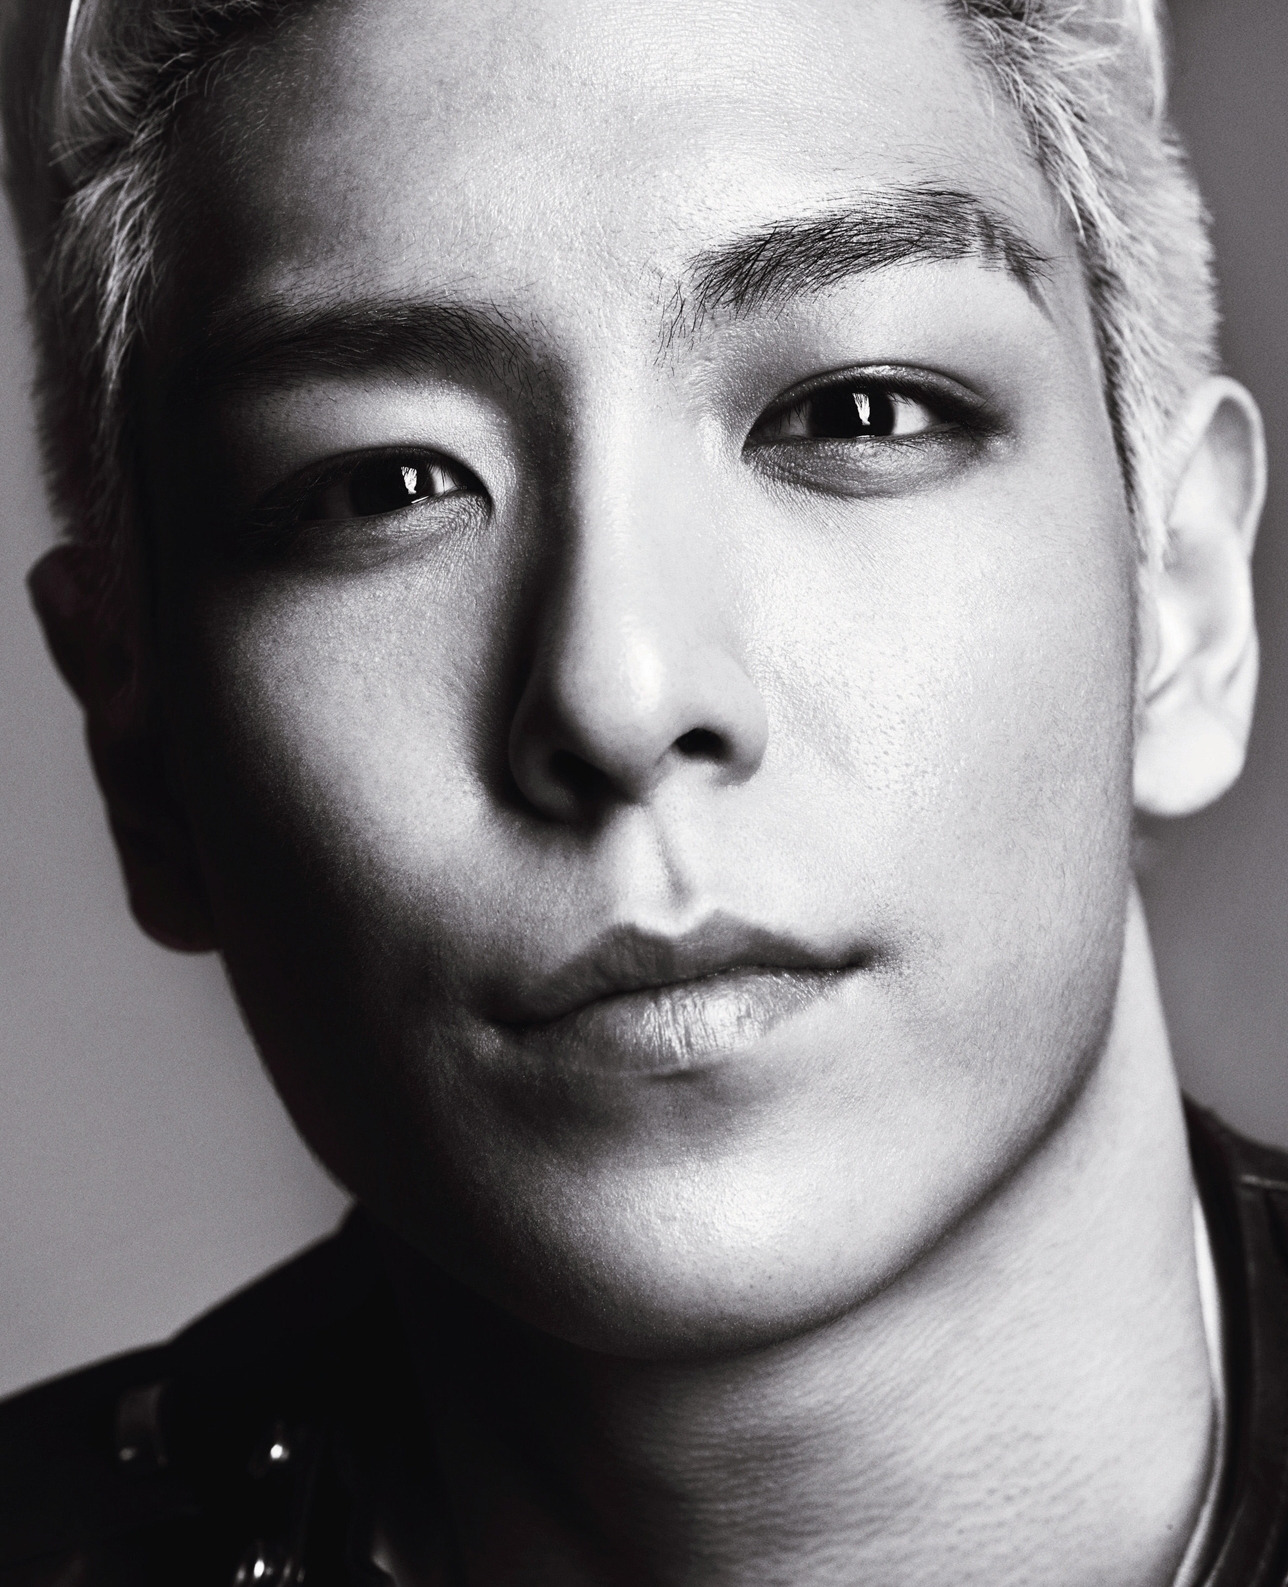 http://static.tumblr.com/v2bxxbv/DhNm1beje/highcut_2011_01_top_13__1_.jpg